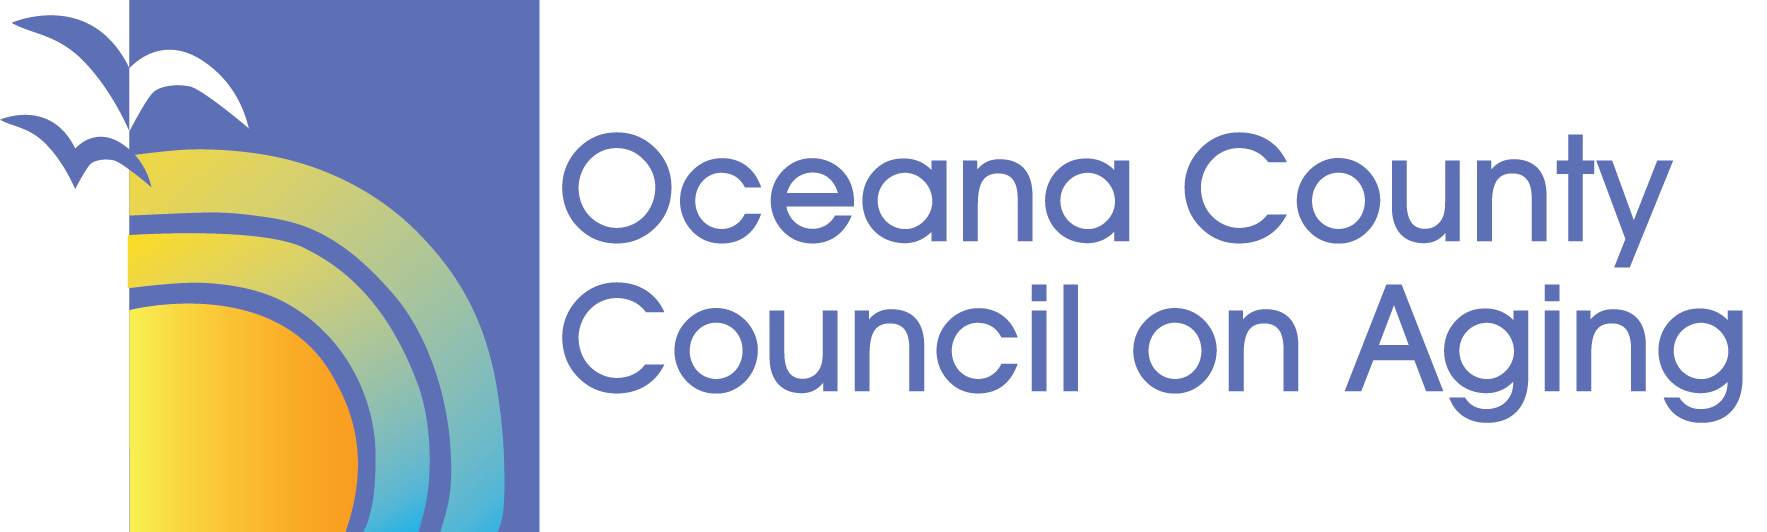 Oceana County Council on Aging